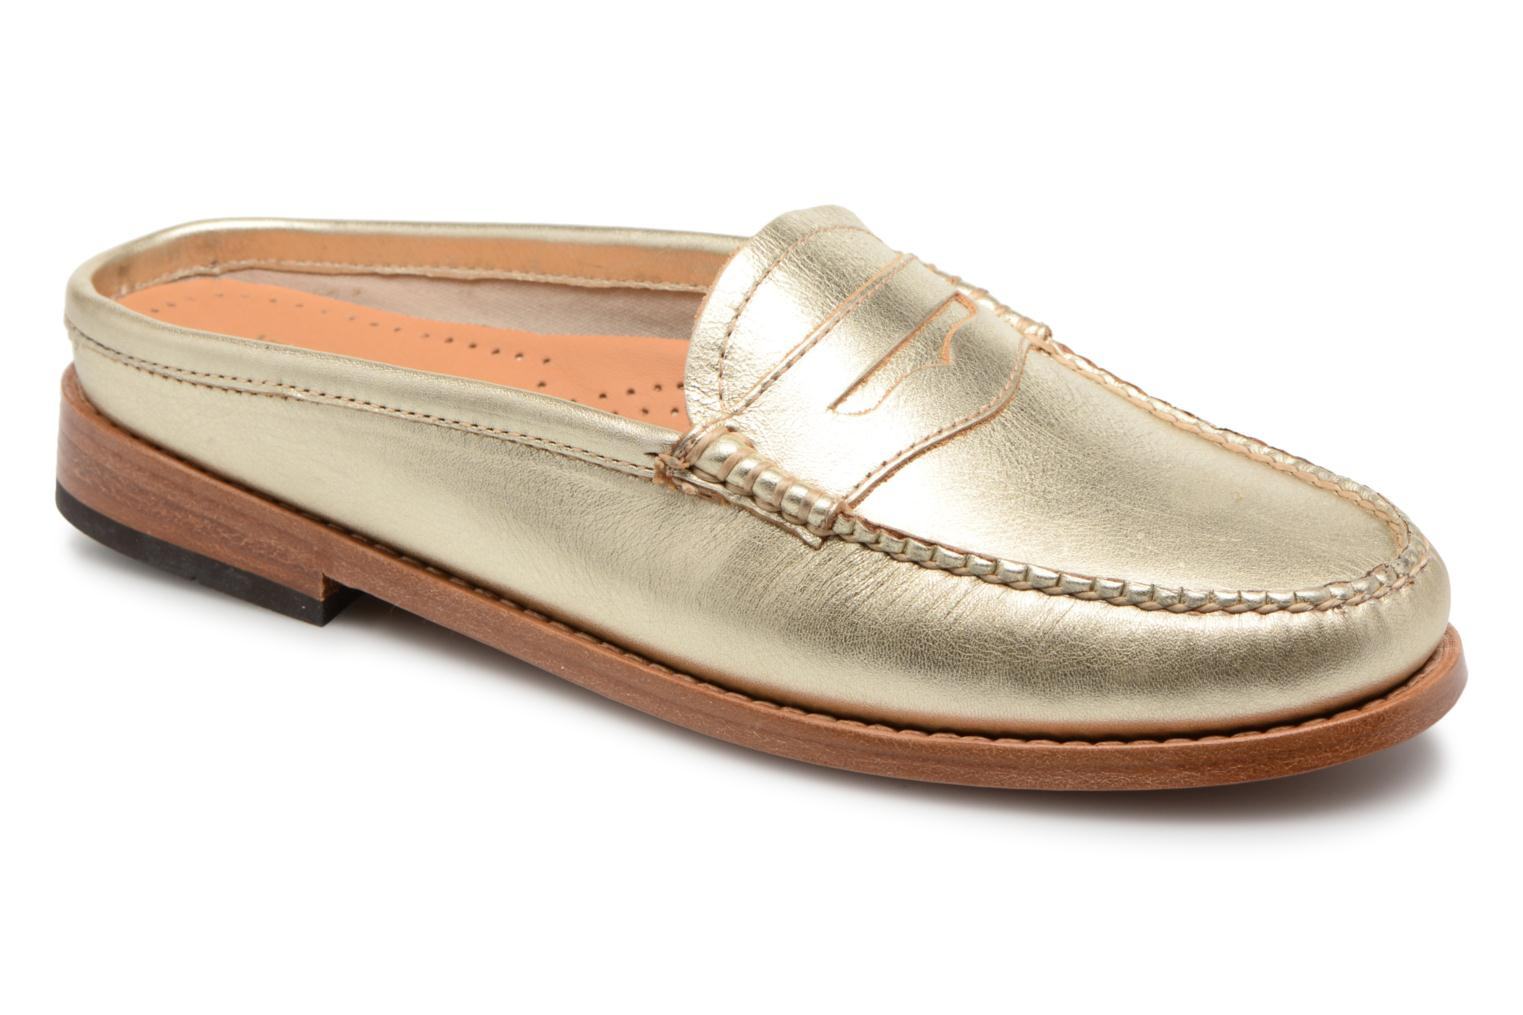 G.H. Bass - Damen - WEEJUN WMN Penny Wheel Print - Slipper - gold/bronze